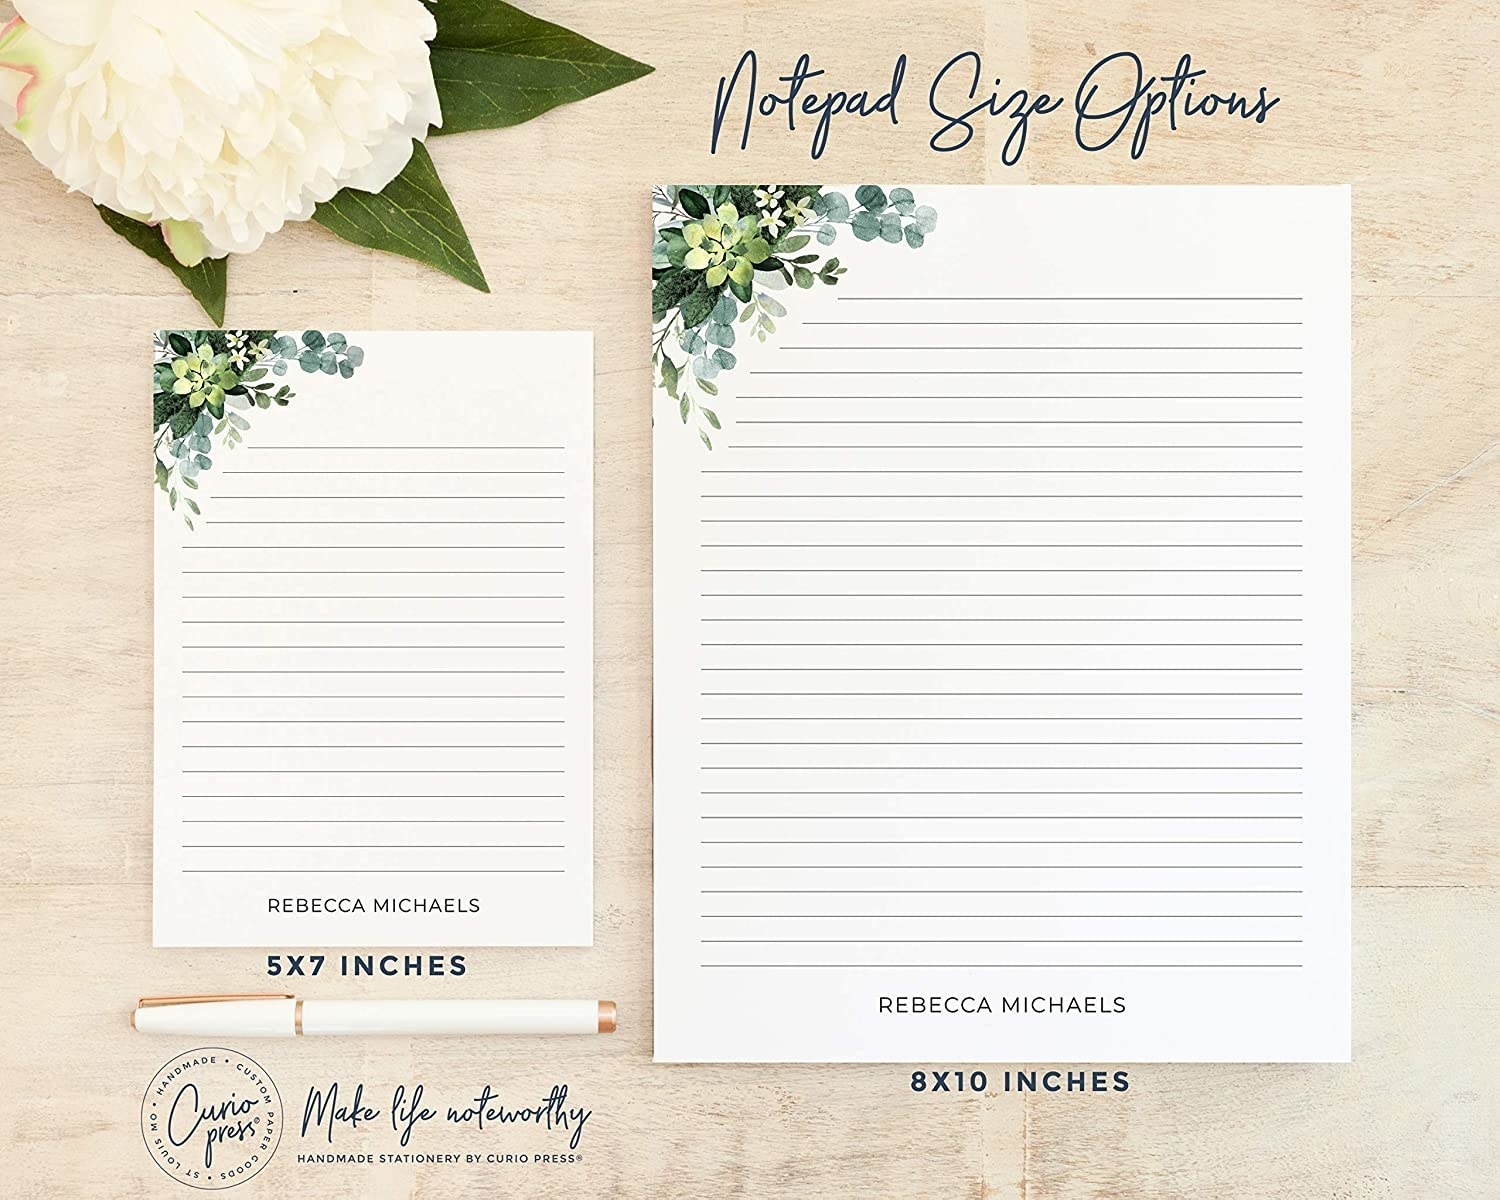 the notepads in two sizes